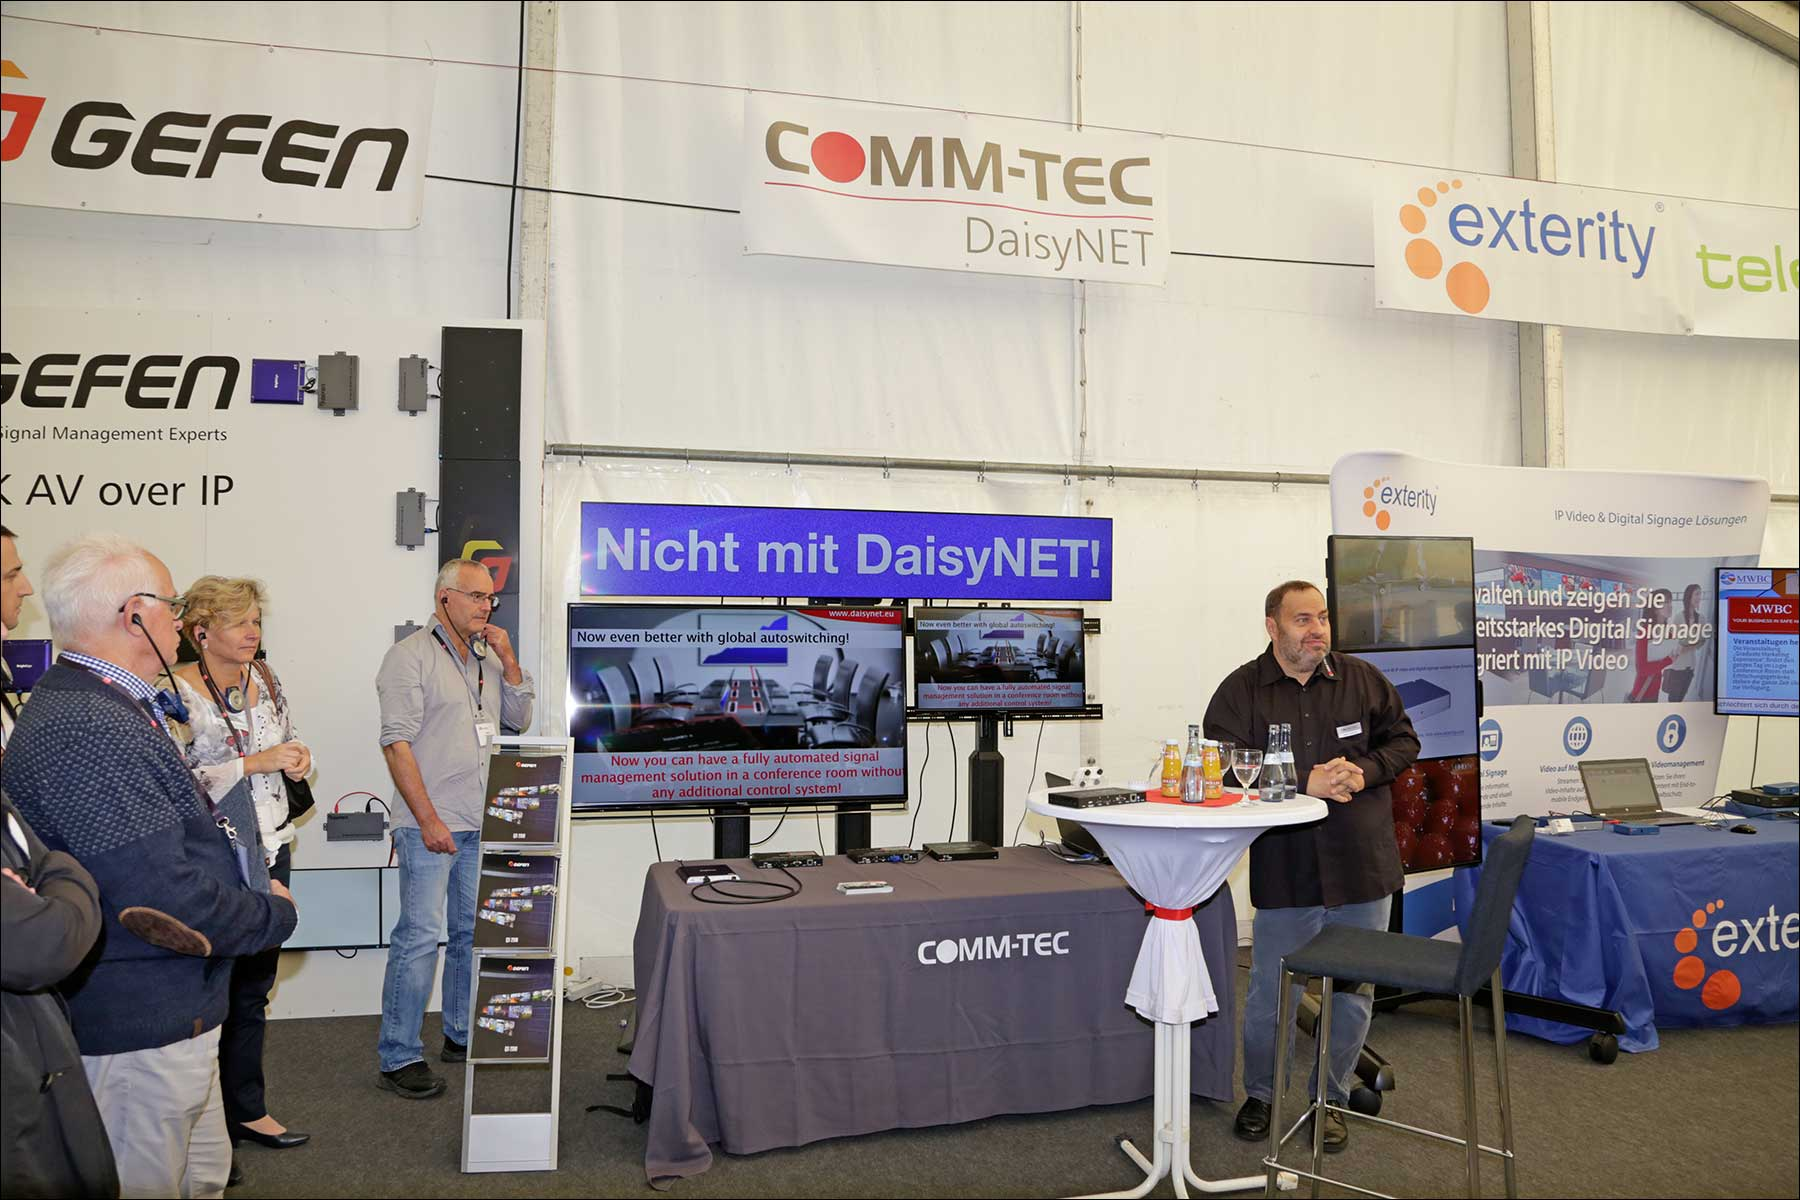 COMM-TEC S14 Solutions Day 2018